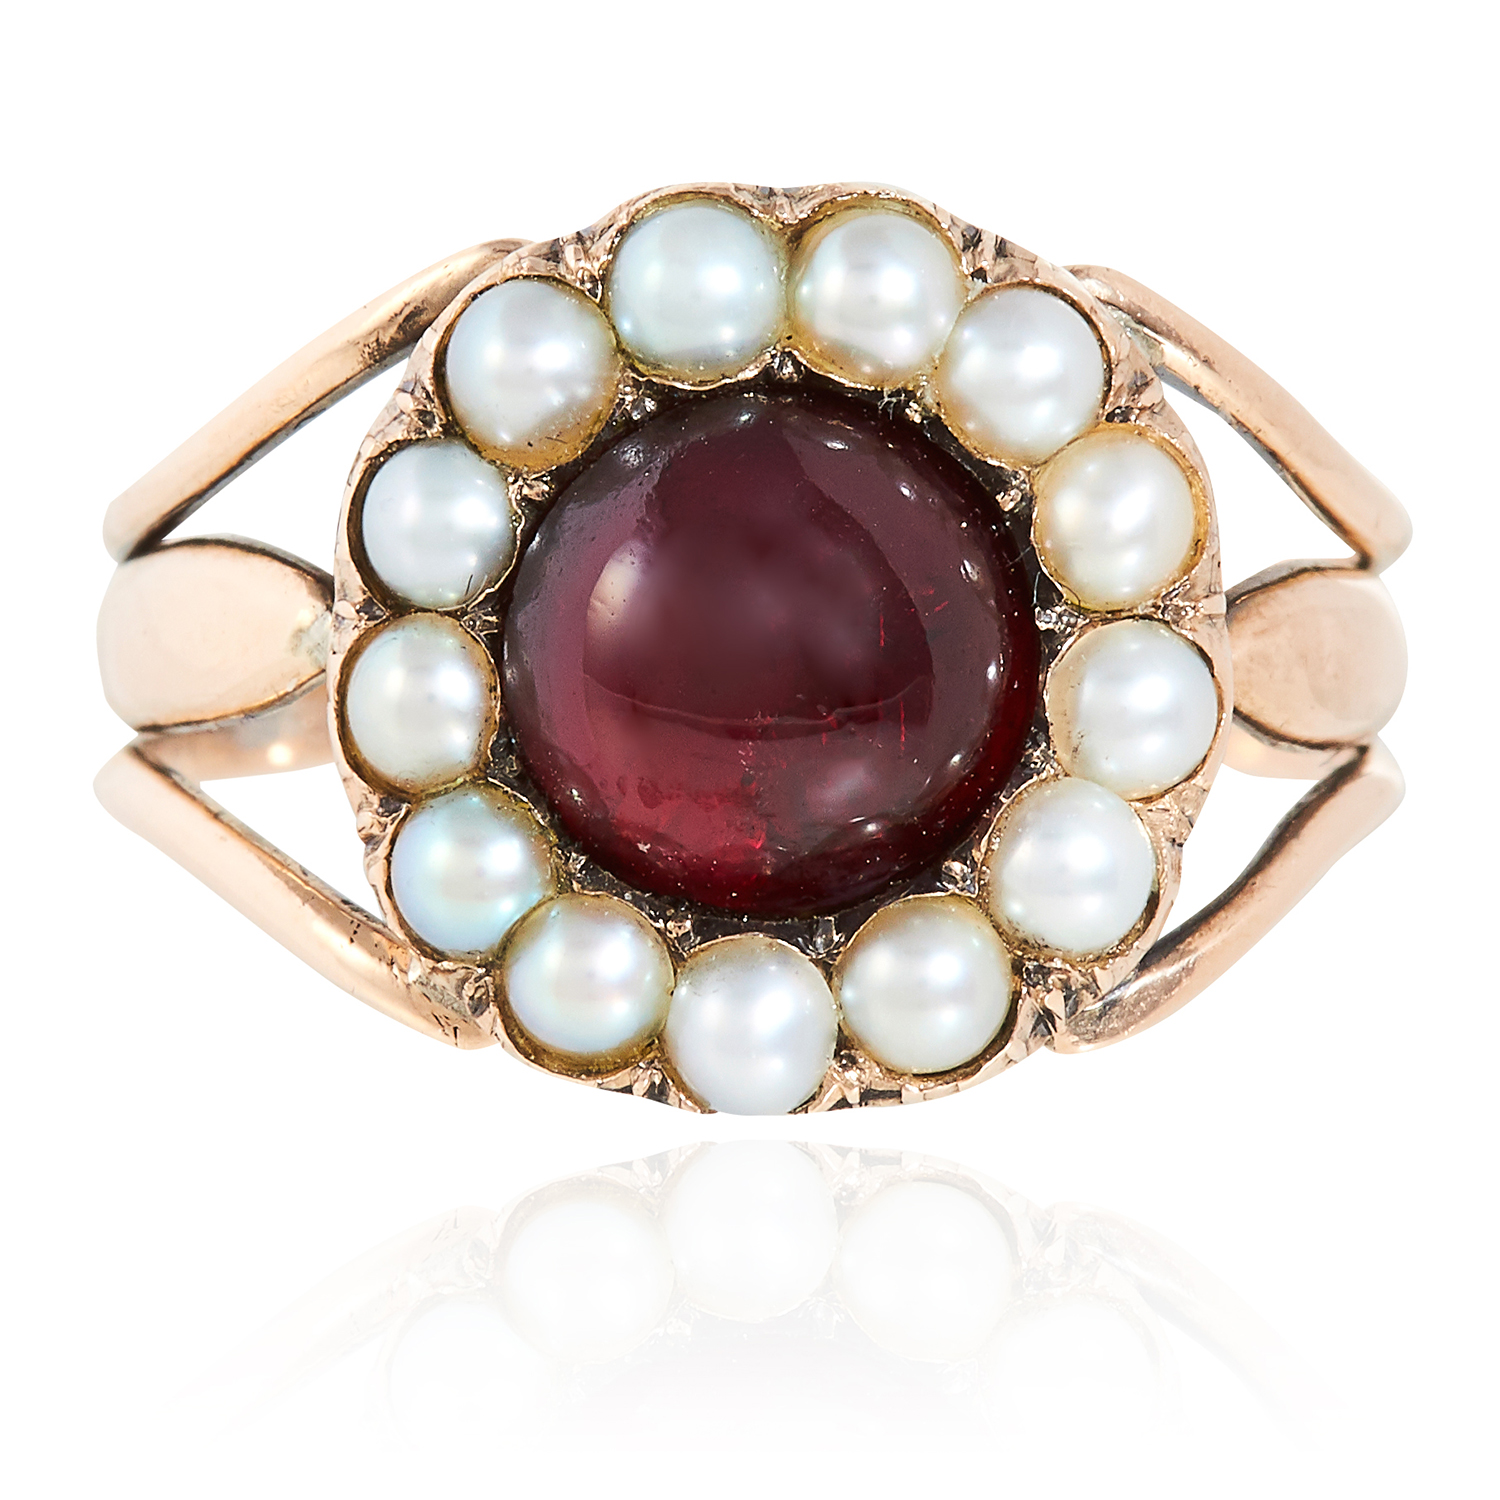 Los 11 - AN ANTIQUE GEORGIAN GARNET AND PEARL MOURNING RING, 1806 in high carat yellow gold, the round